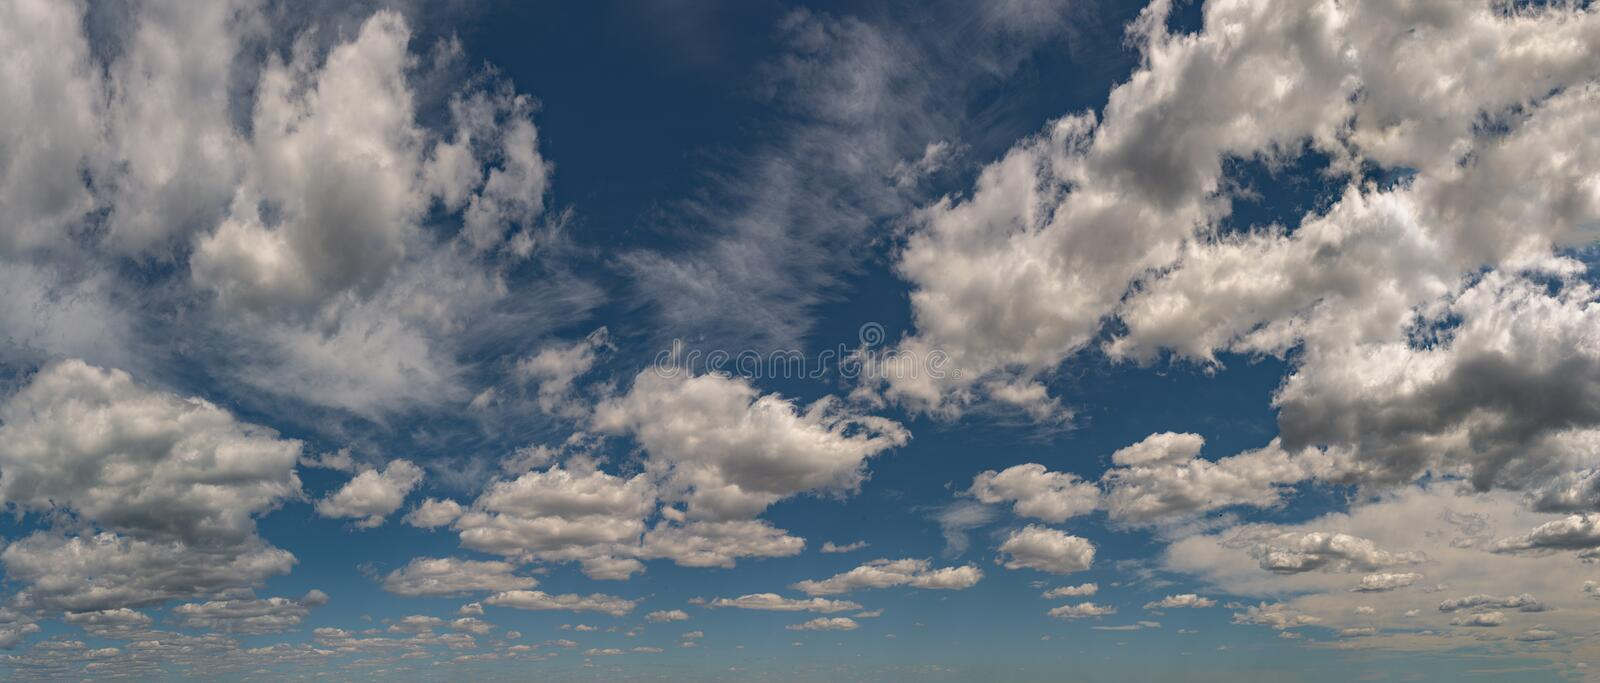 Fluffy gray and white cirrus clouds above horizon royalty free stock images